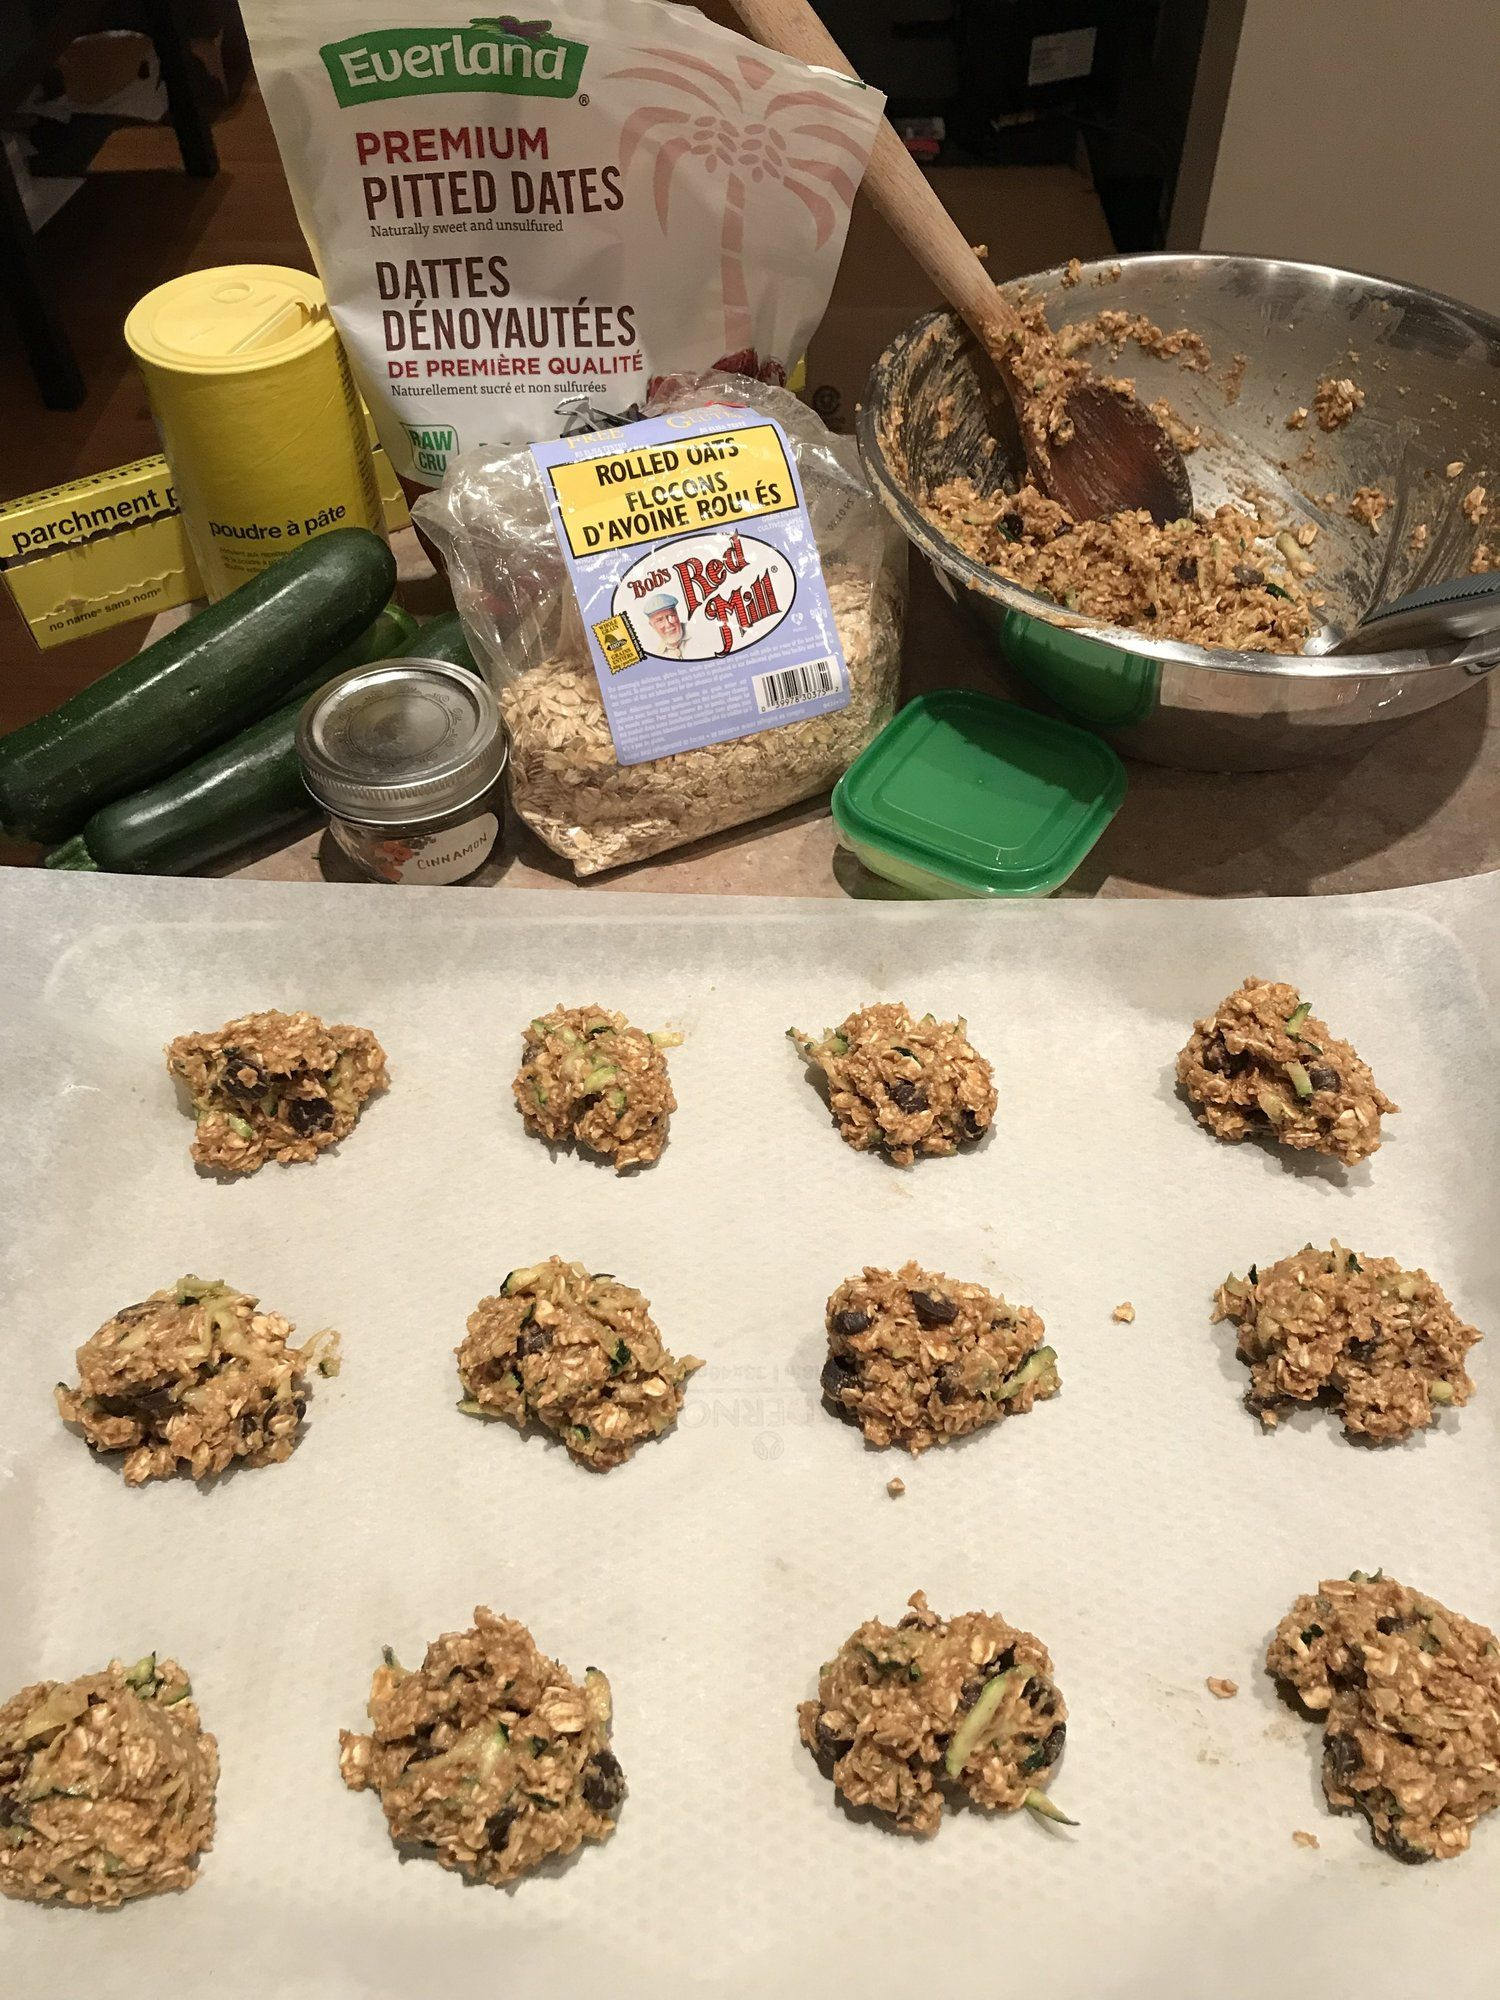 Zucchini Bread Muffin Tops From The Oh She Glows App Luna Yoga Montreal Live Stream Jivamukti Yoga Flo Teacher Training Zucchini Bread Muffins Zucchini Bread Zucchini